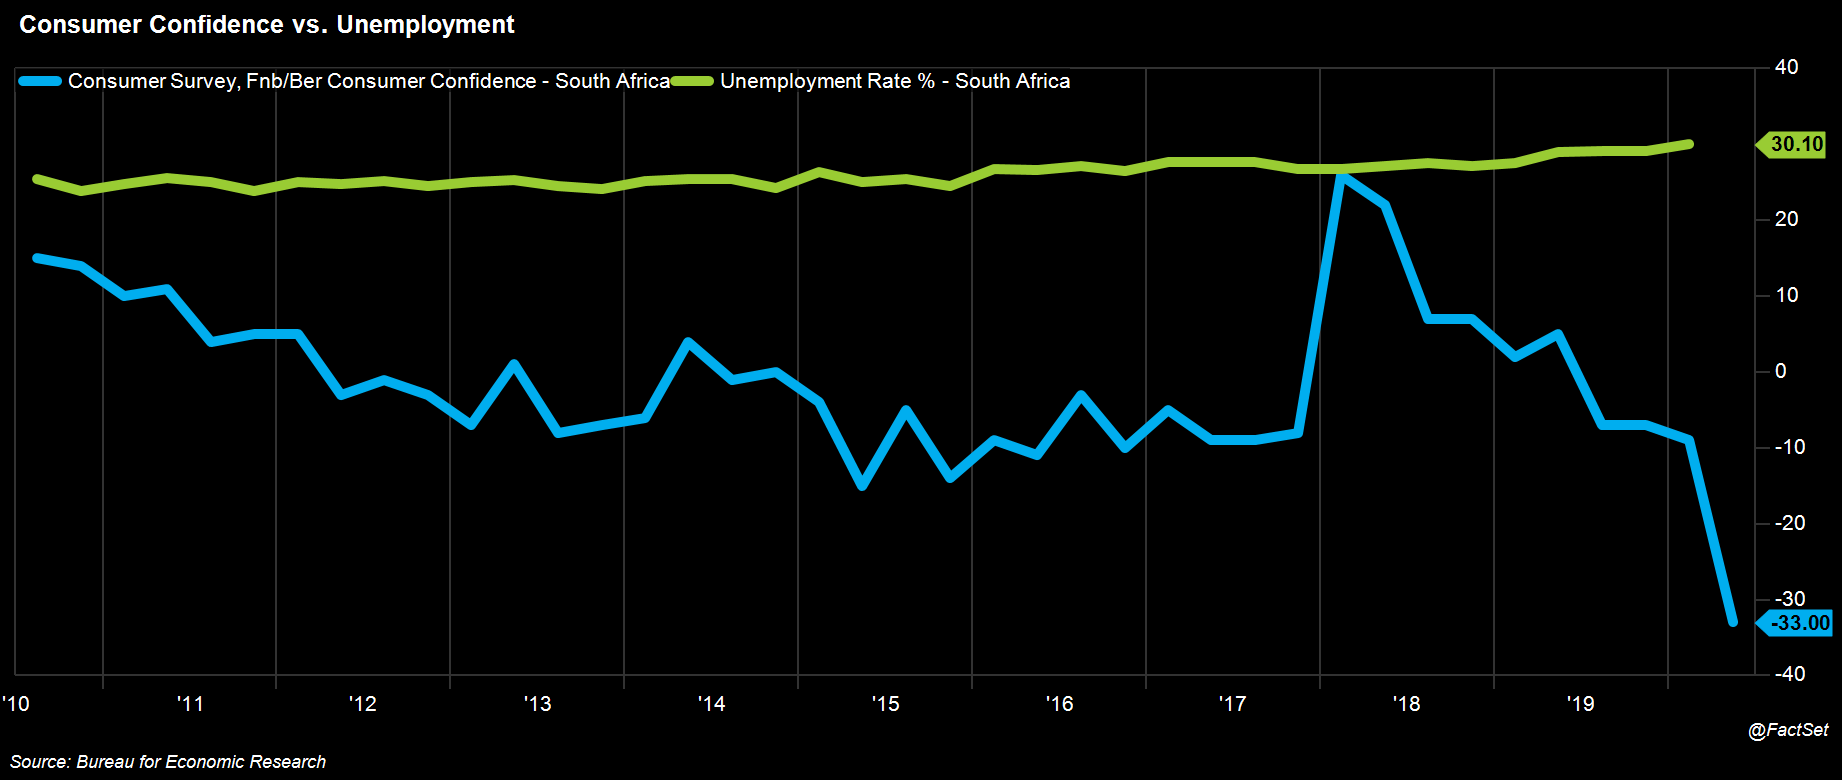 Consumer Confidence vs Unemployment